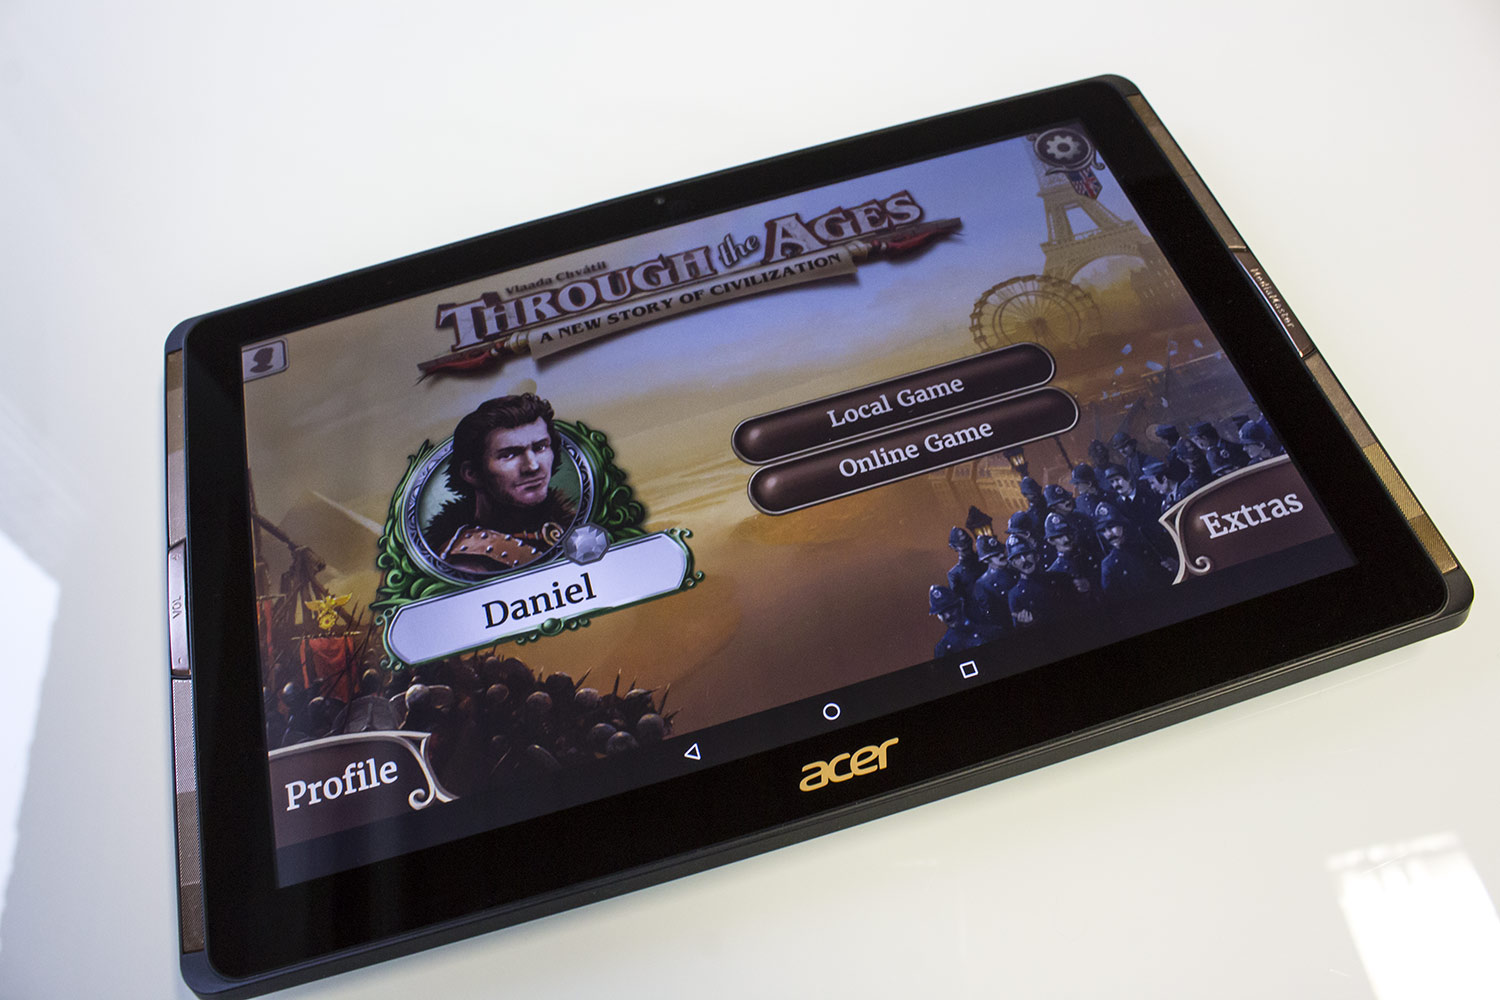 Through the Ages als Android-App - erster Eindruck